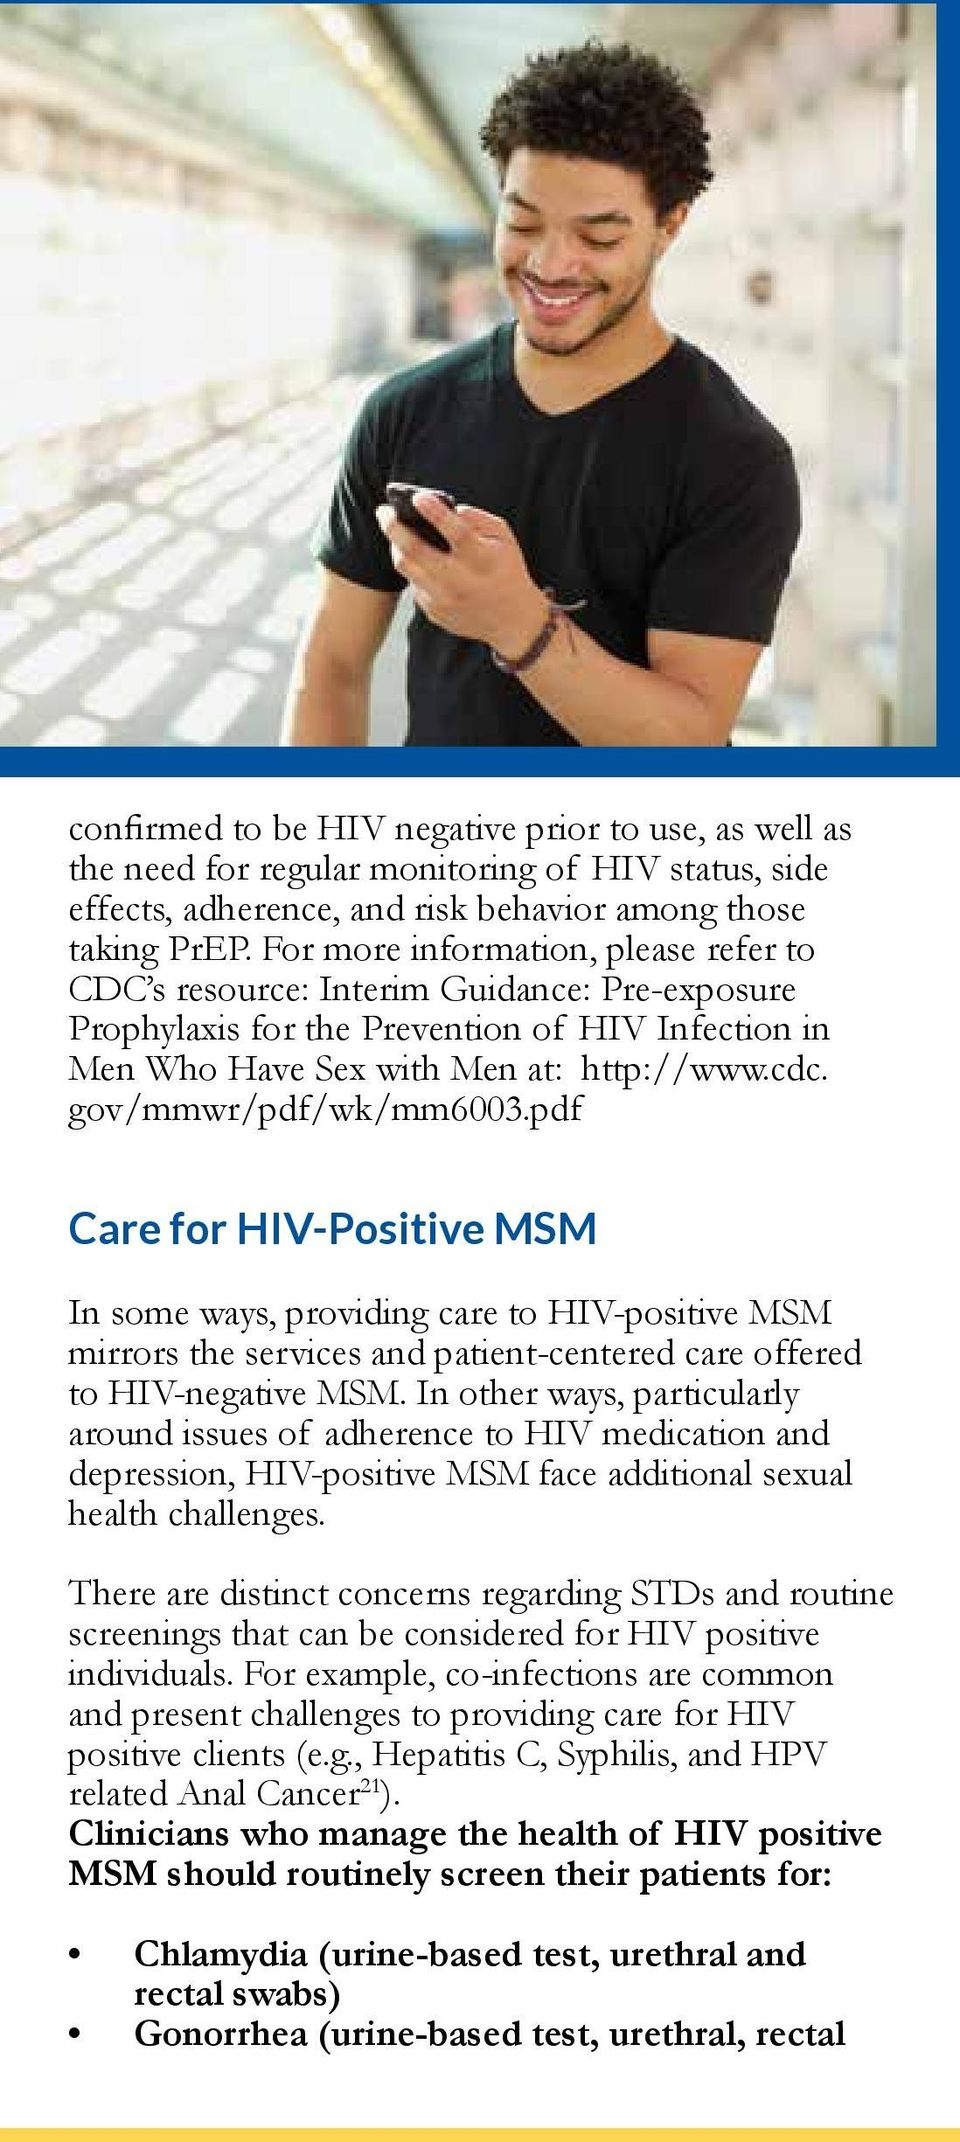 gov/mmwr/pdf/wk/mm6003.pdf Care for HIV-Positive MSM In some ways, providing care to HIV-positive MSM mirrors the services and patient-centered care offered to HIV-negative MSM.